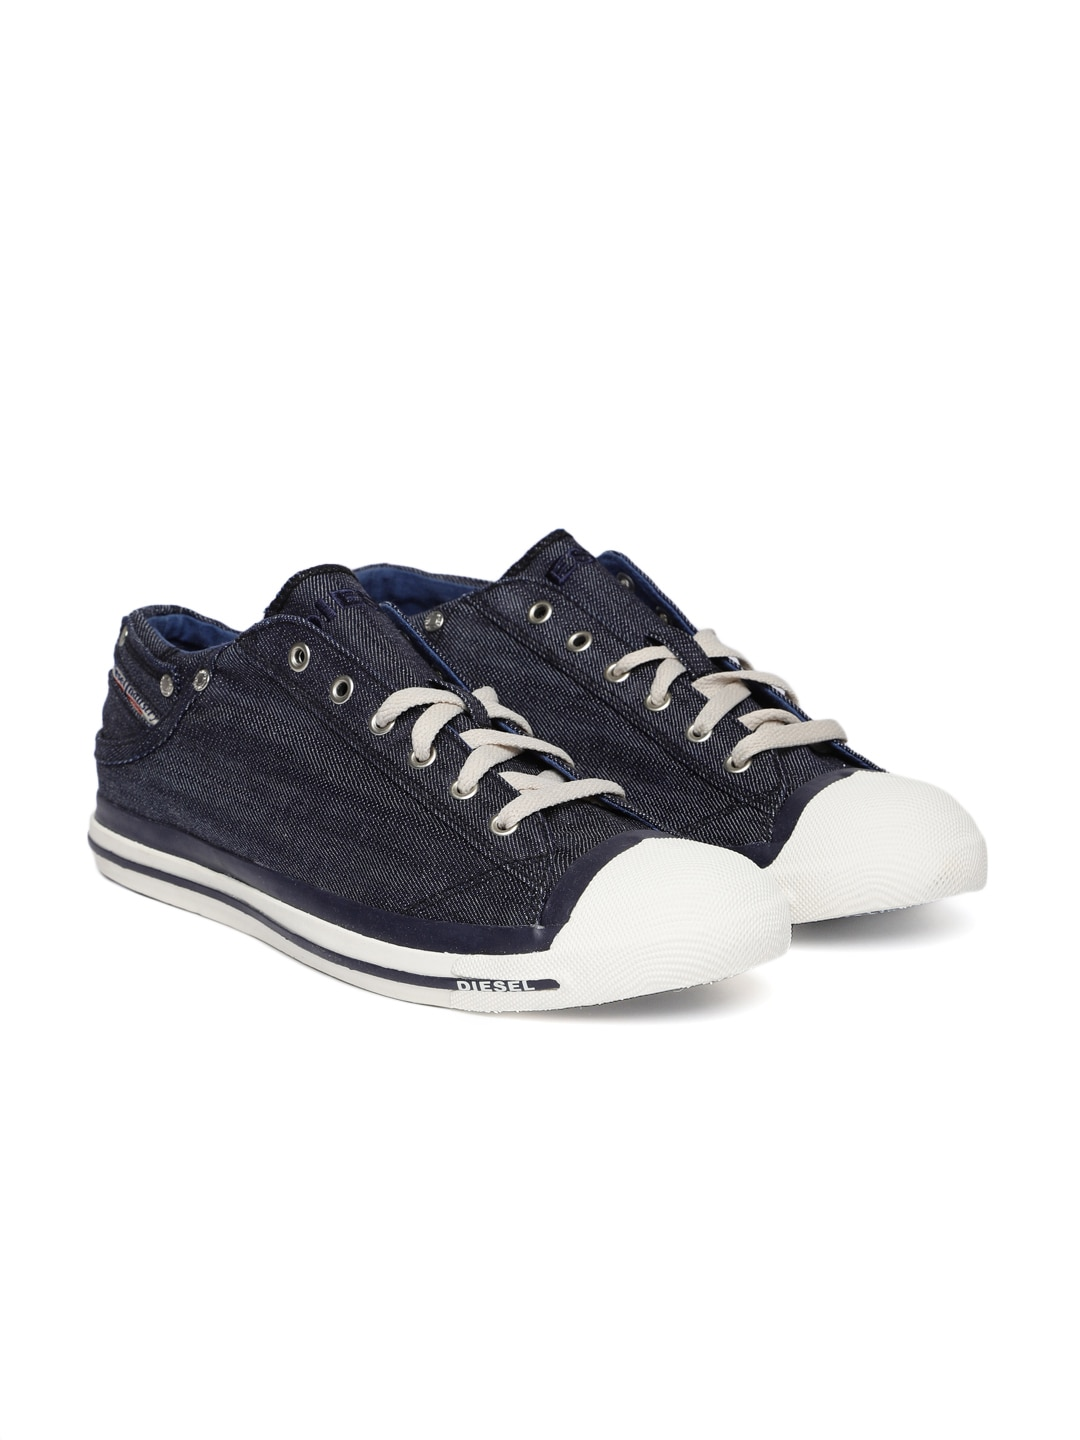 best service bc4a5 27ce4 Yepme Shoes - Buy Yepme Shoes Online in India